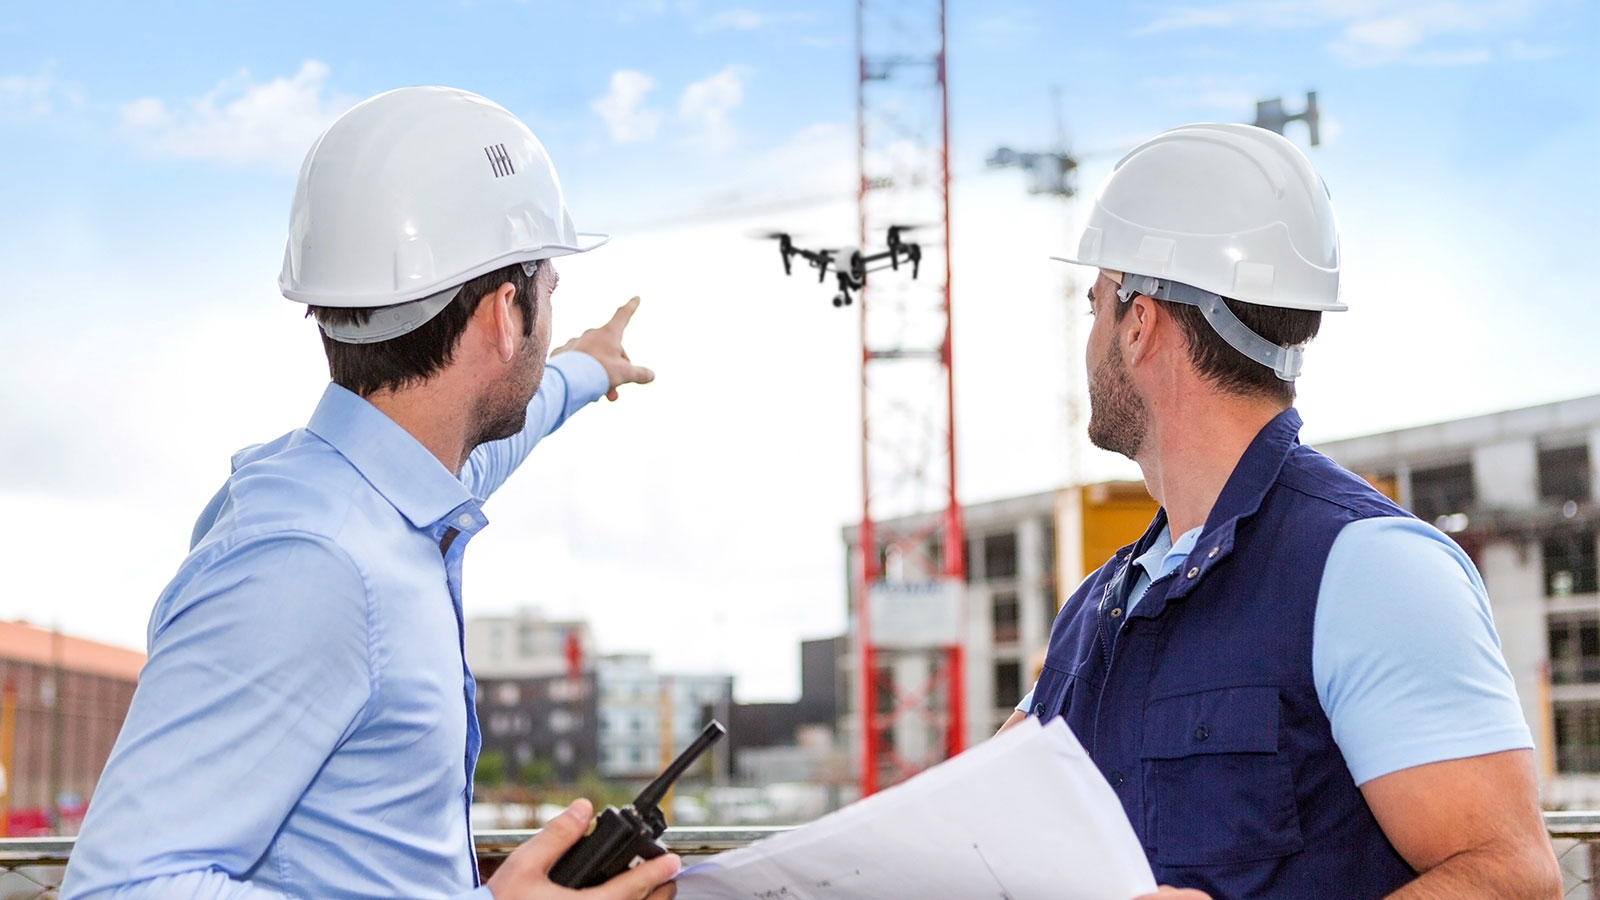 Use drones in construction project management